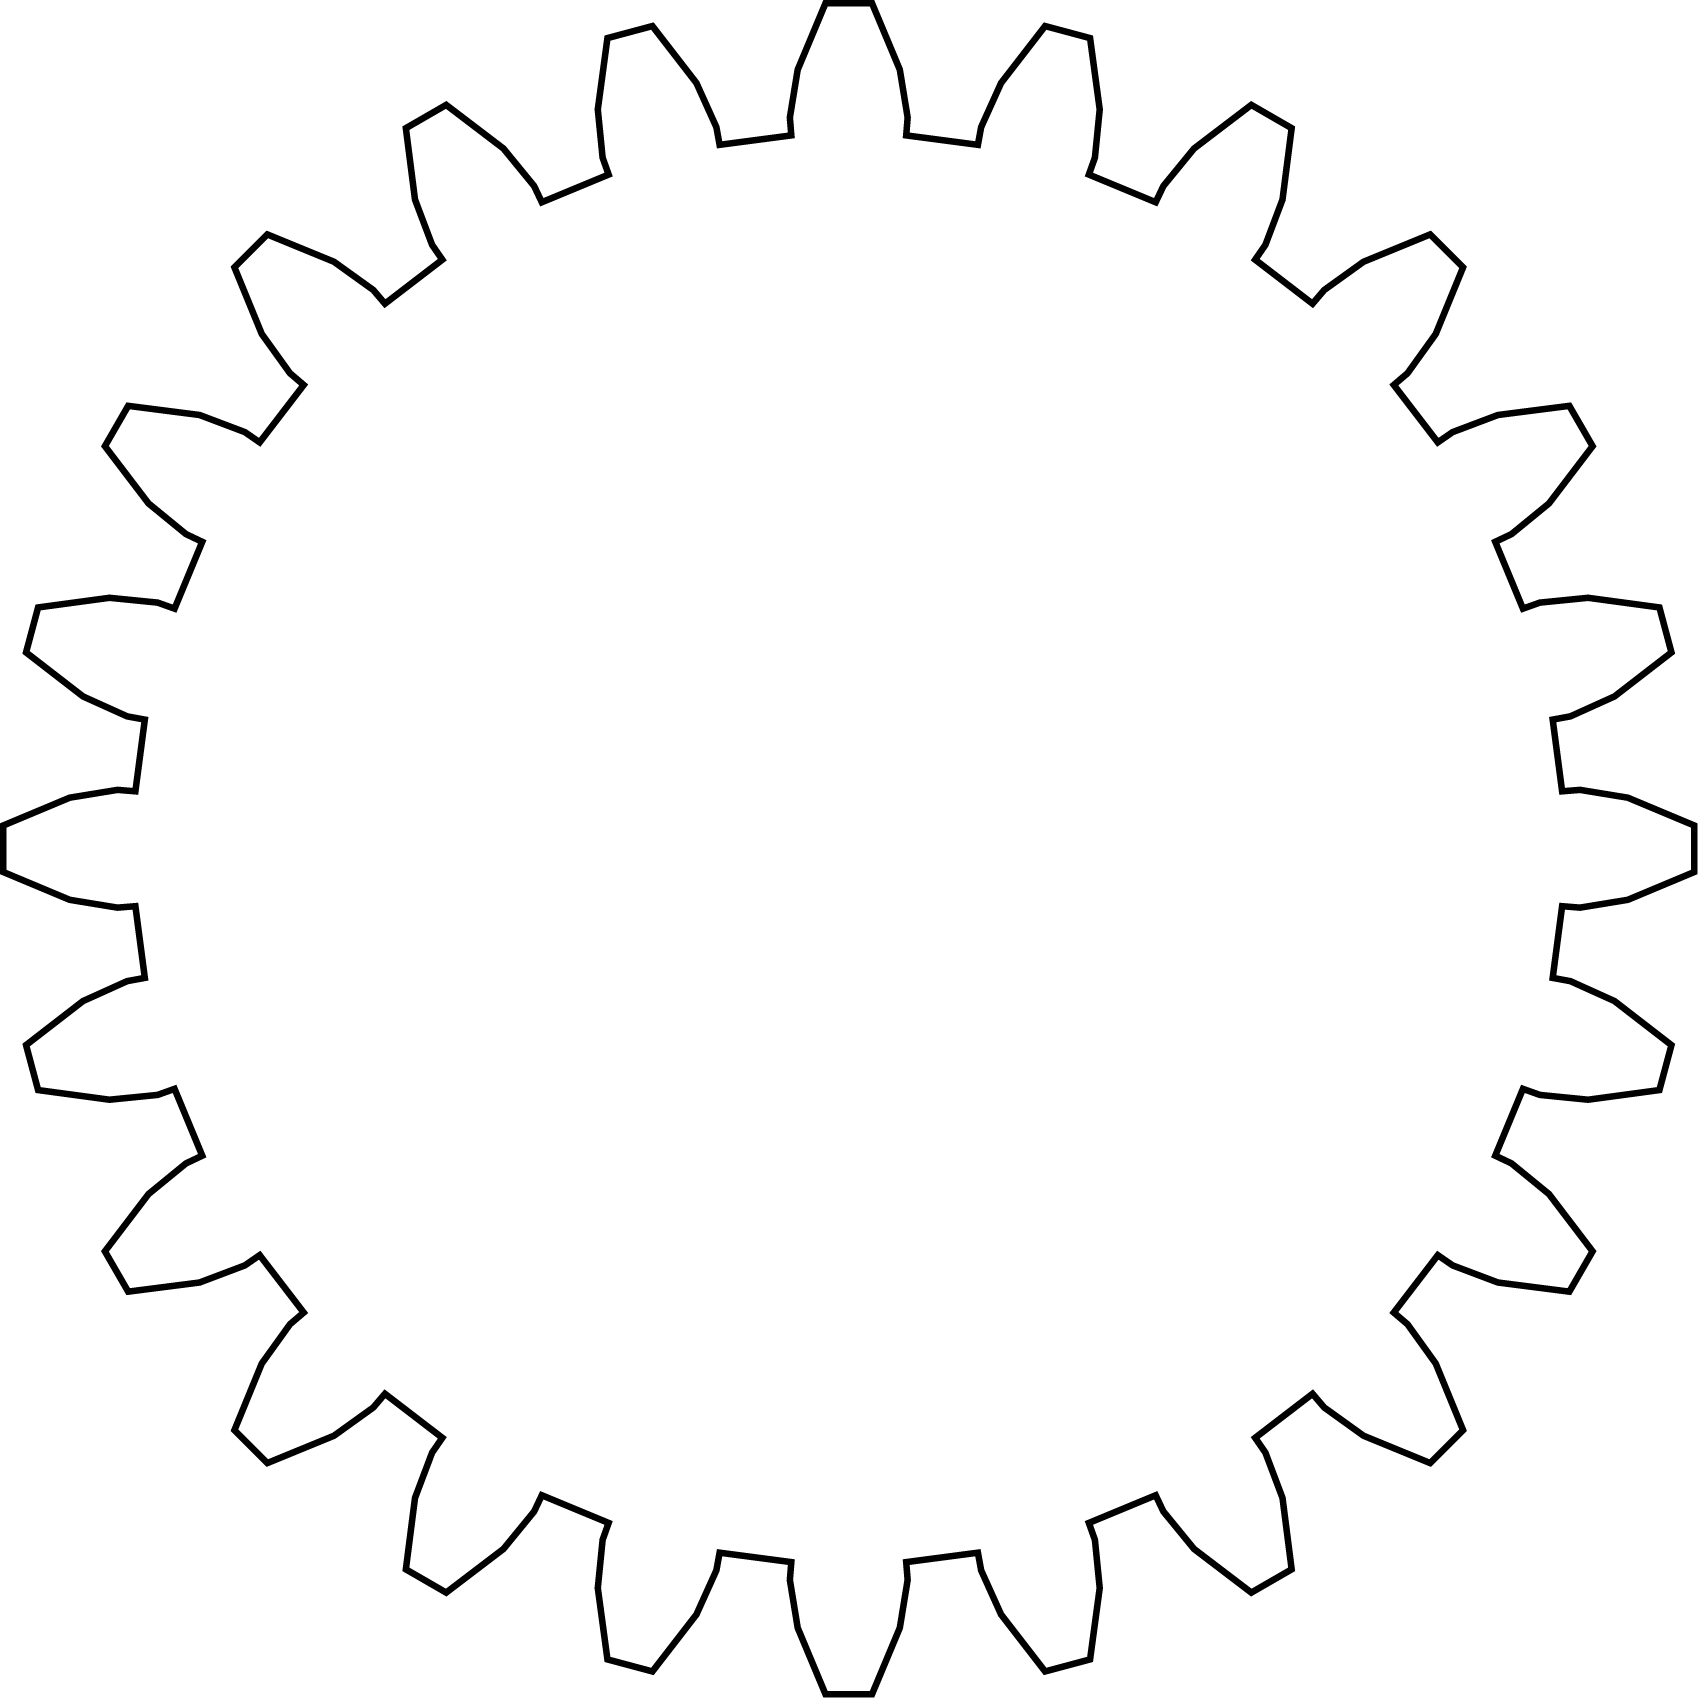 Outline of gear.